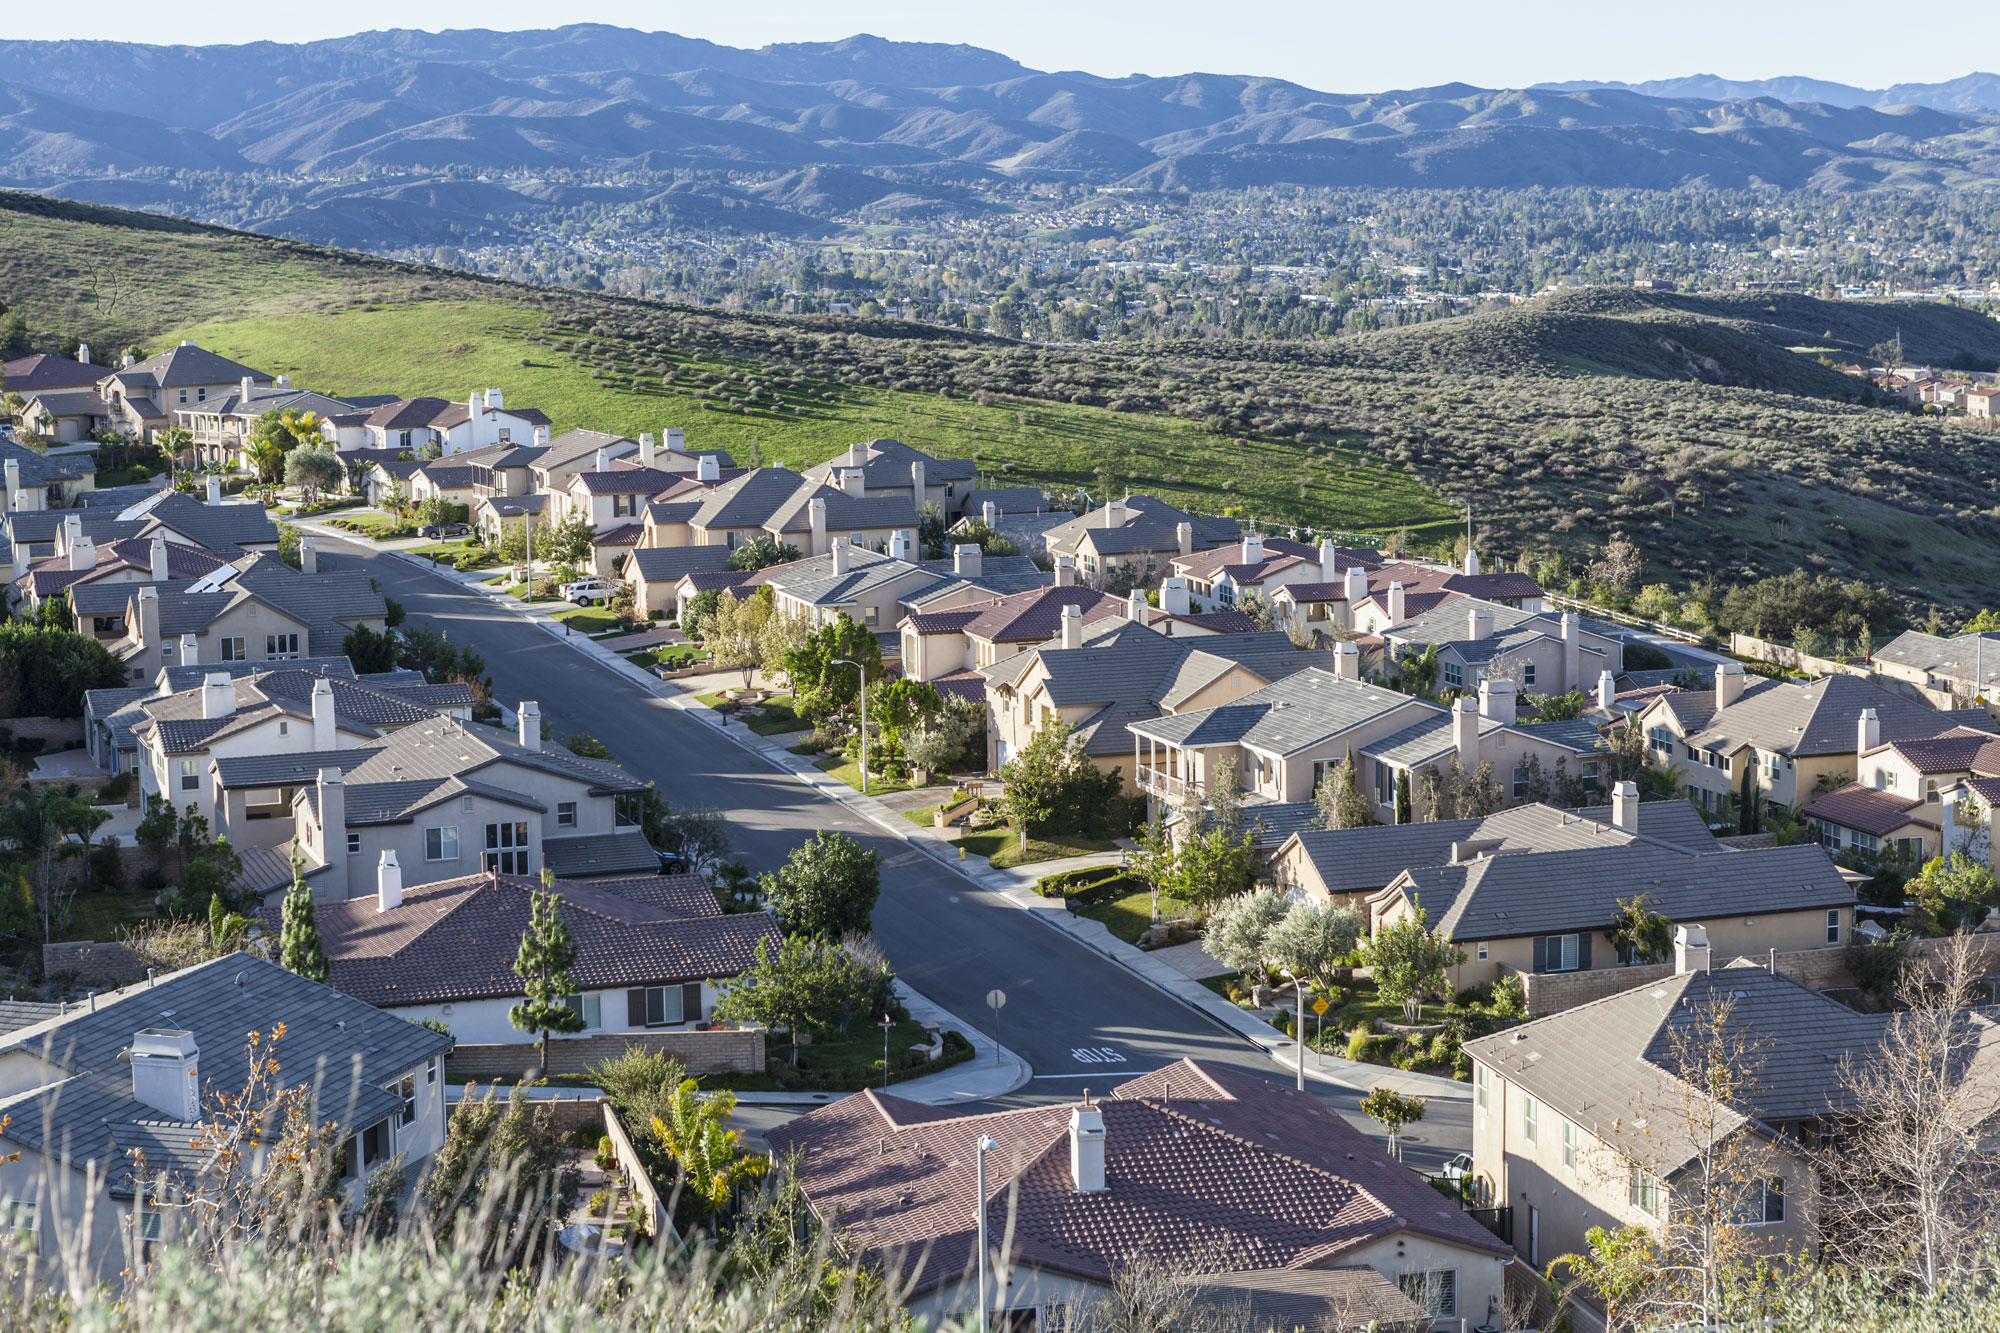 Early morning view of hillside California suburban housing in Simi Valley, Ventura County near Los Angeles.